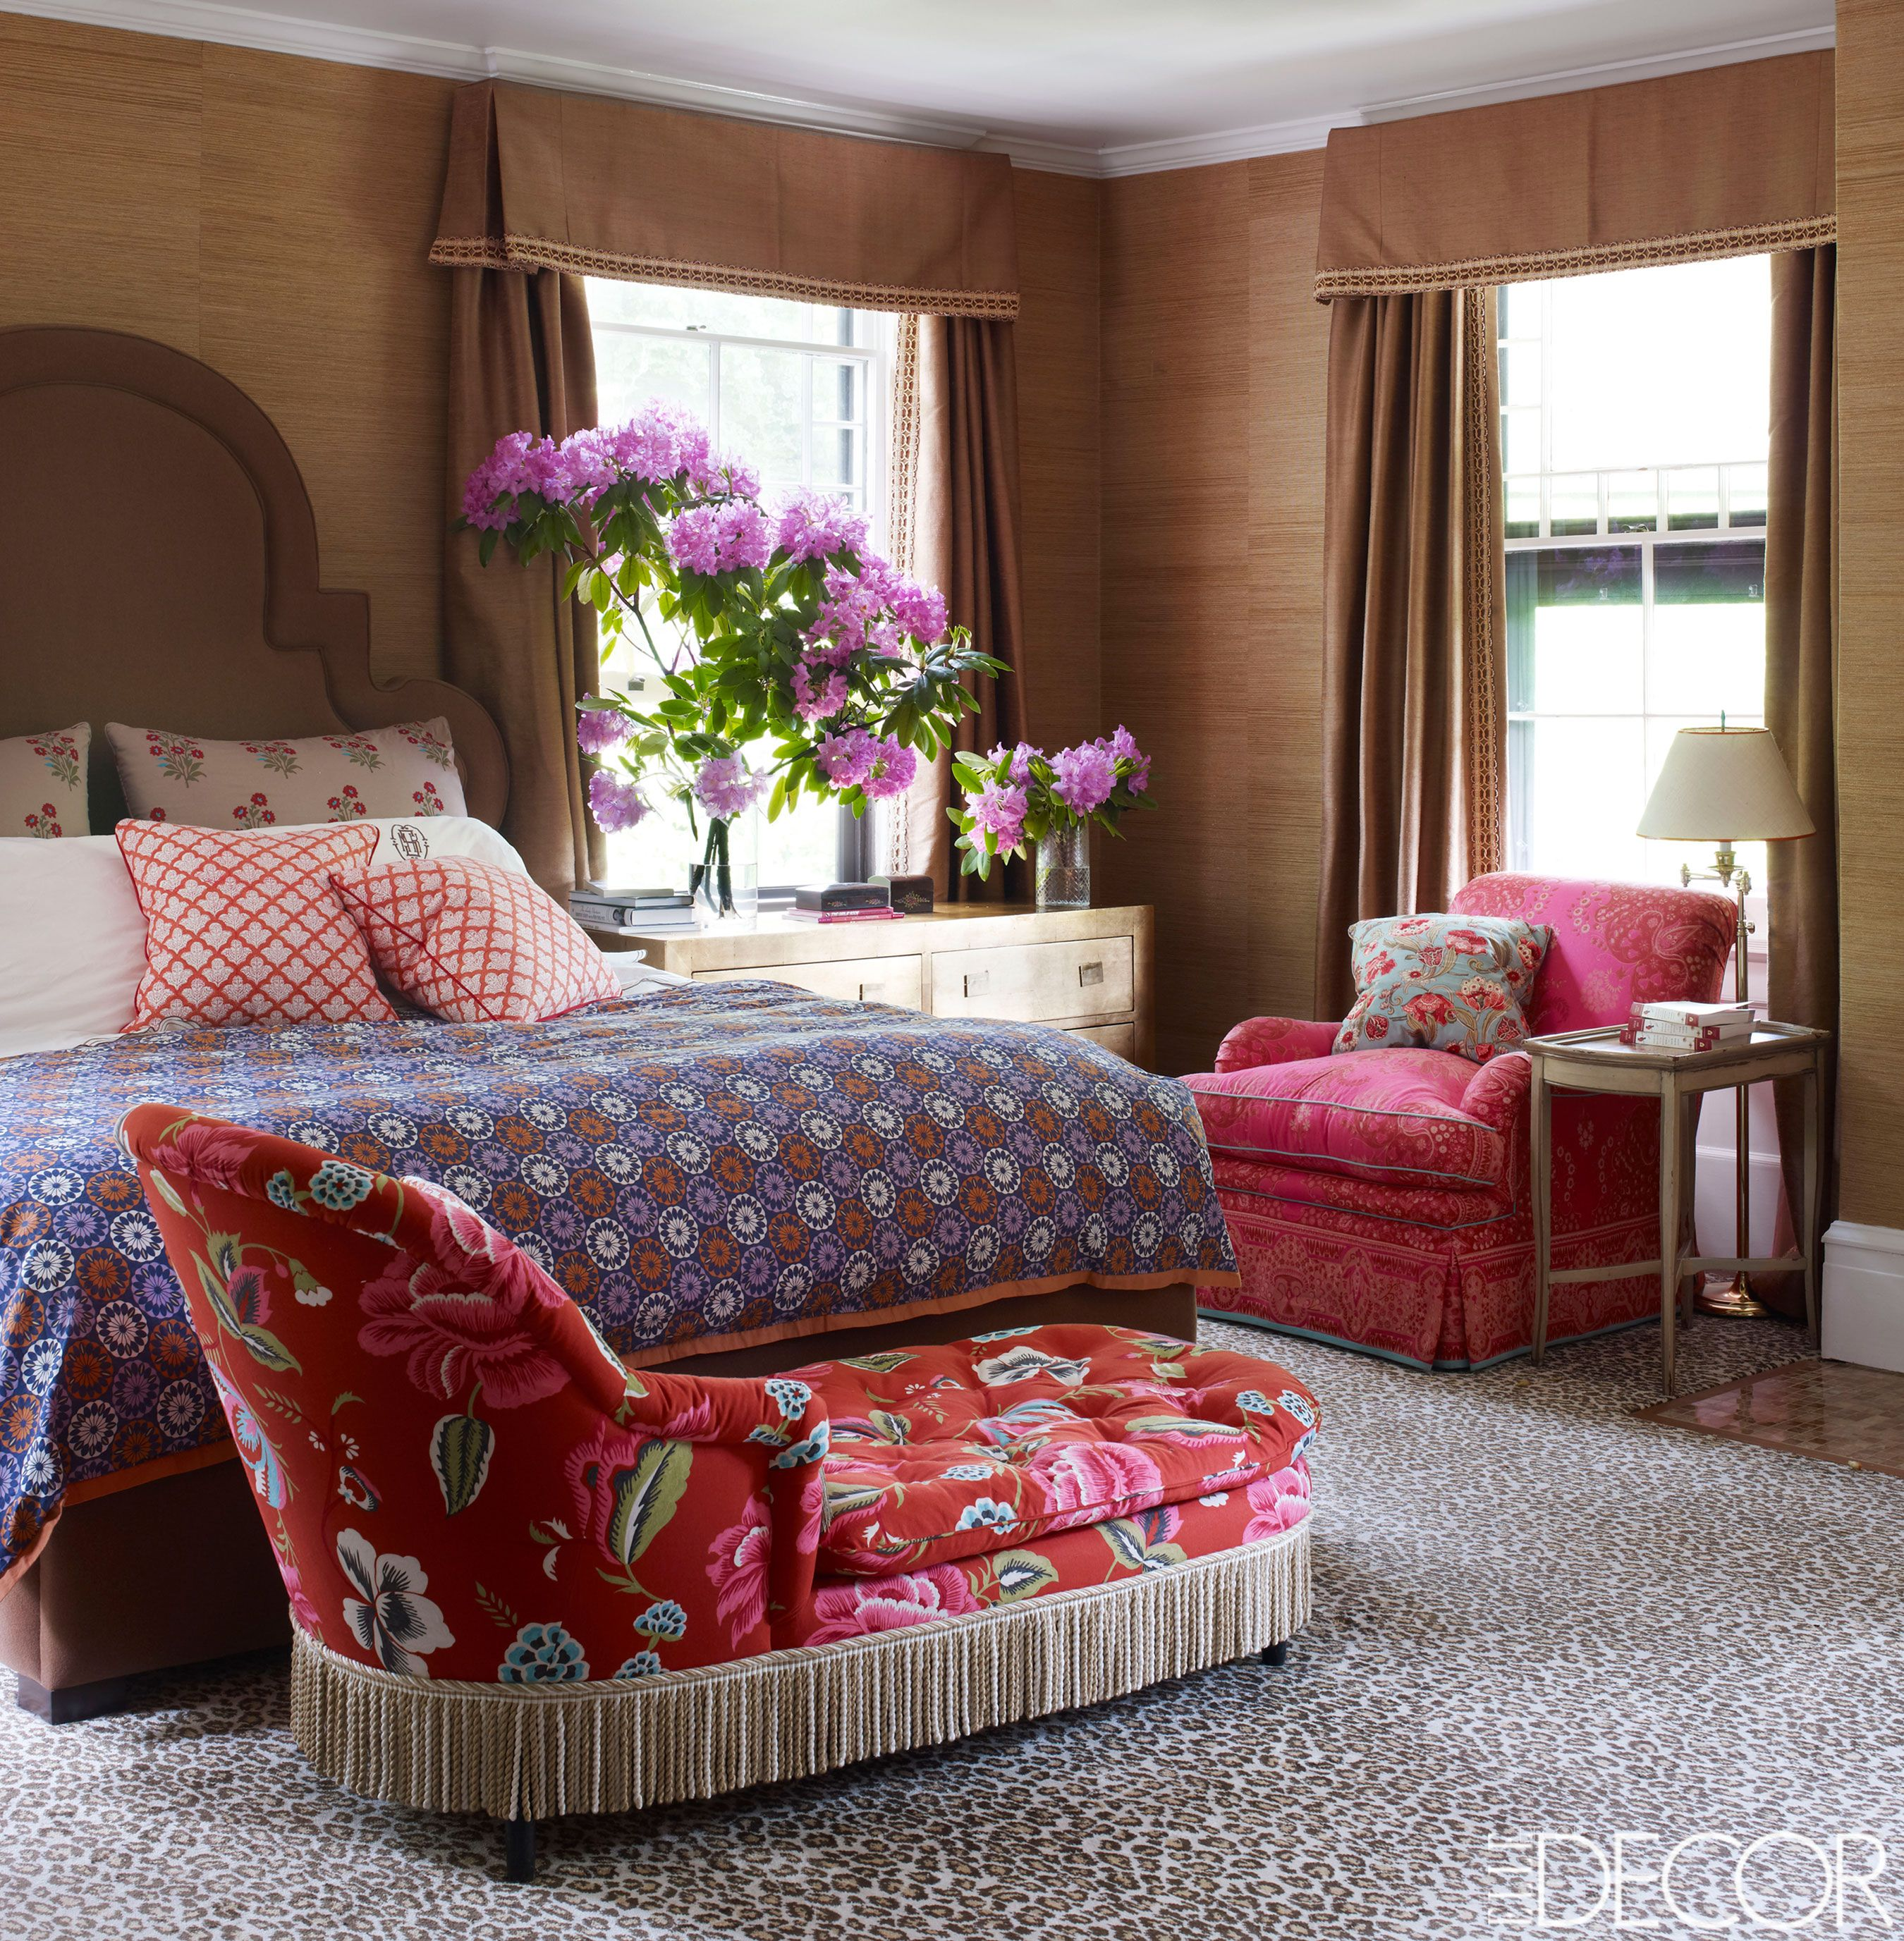 Floral Patterns Decorating With Flowers